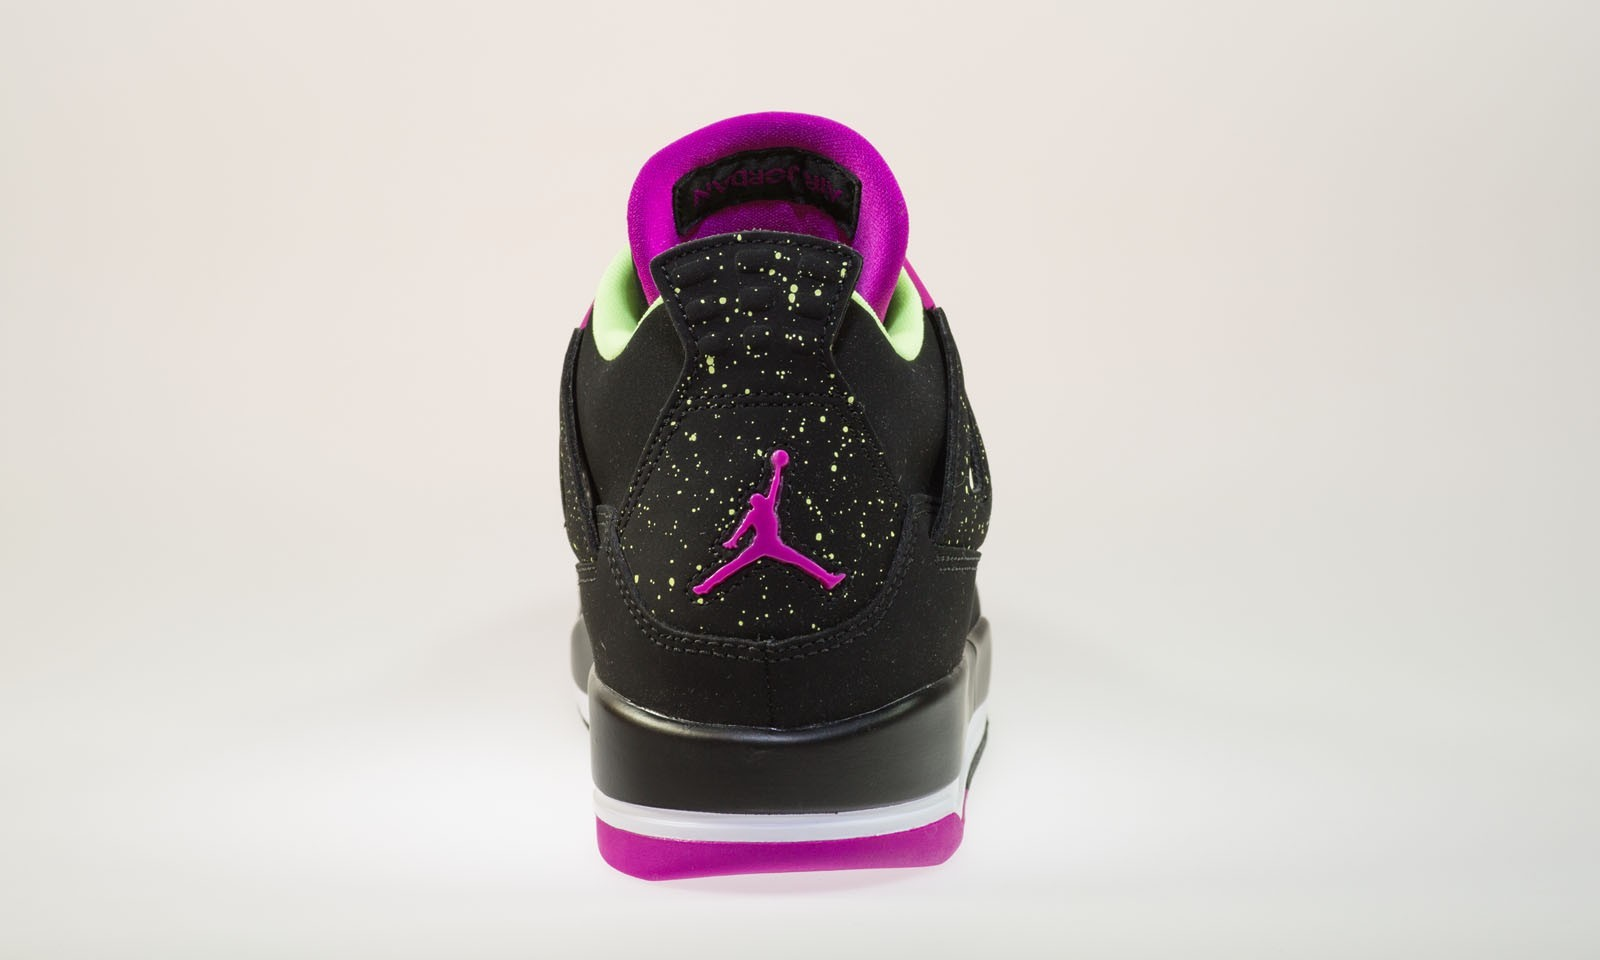 Air Jordan 4(IV) Retro 30th GG 'Fuchsia' - Girls' Black Fuchsia Flash LQD Basketball Shoes 705344-027